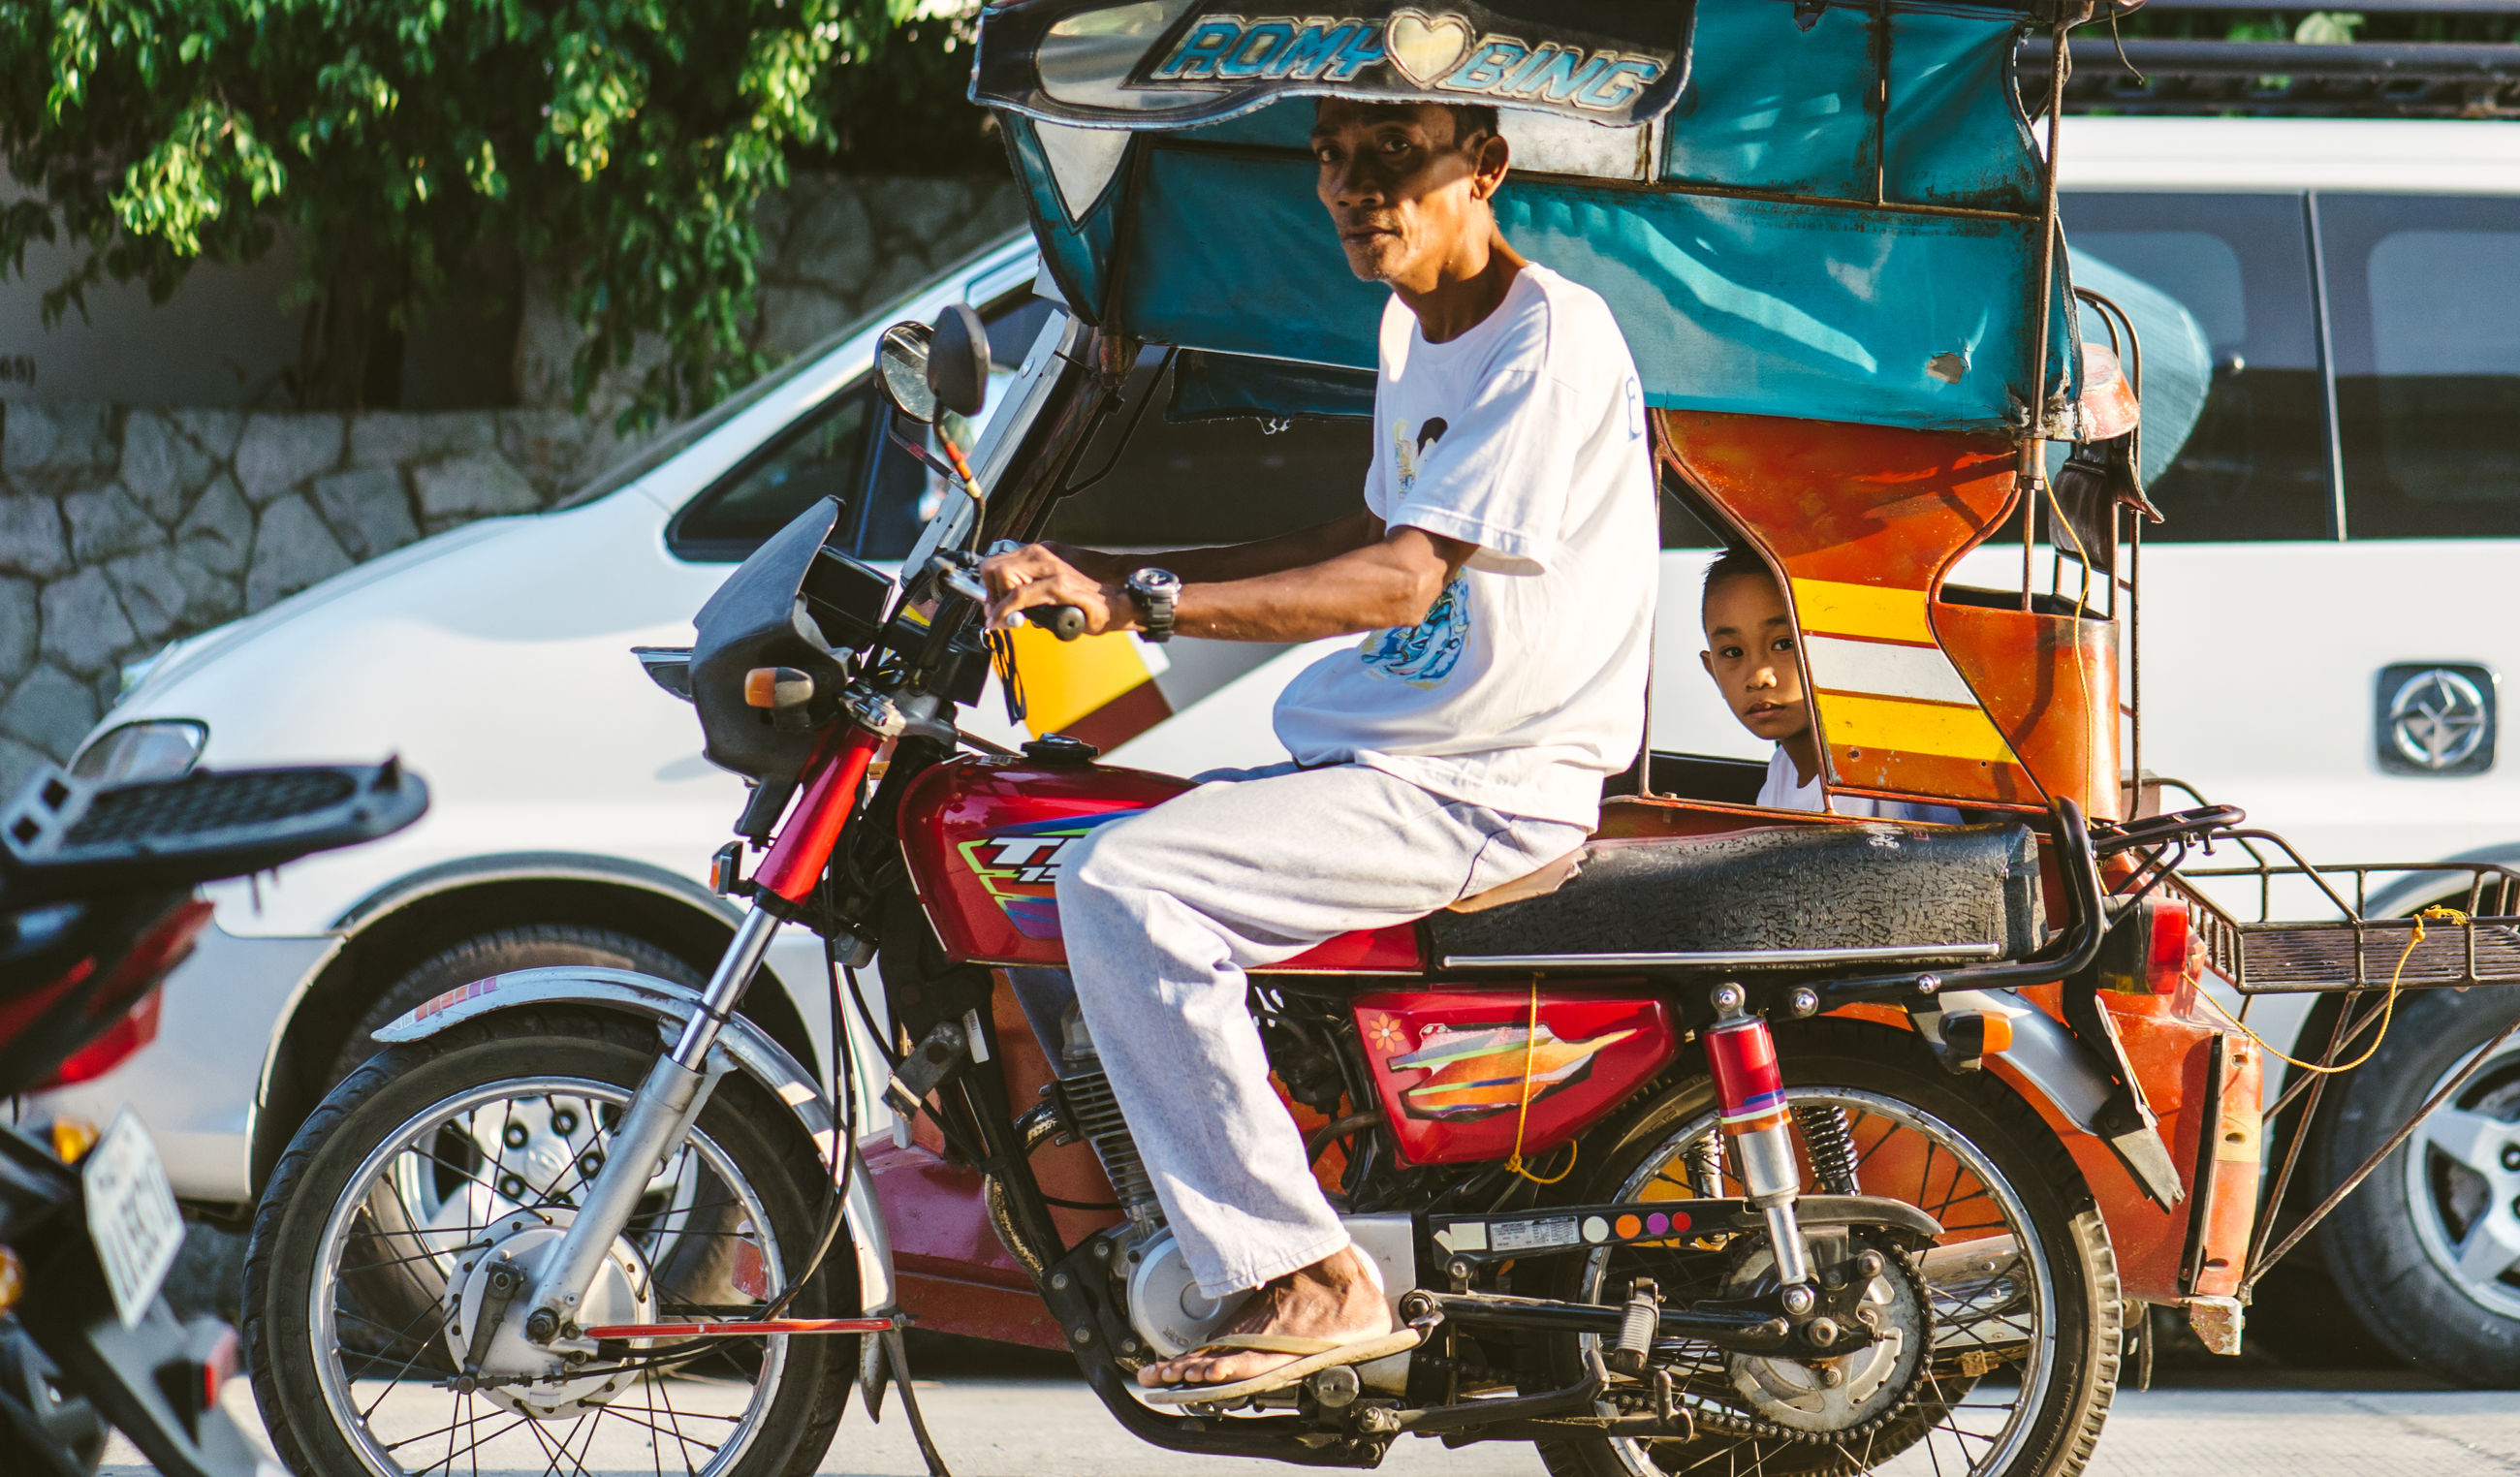 mode of transport, transportation, land vehicle, bicycle, riding, lifestyles, stationary, travel, leisure activity, motorcycle, car, street, parked, parking, men, on the move, casual clothing, cycling